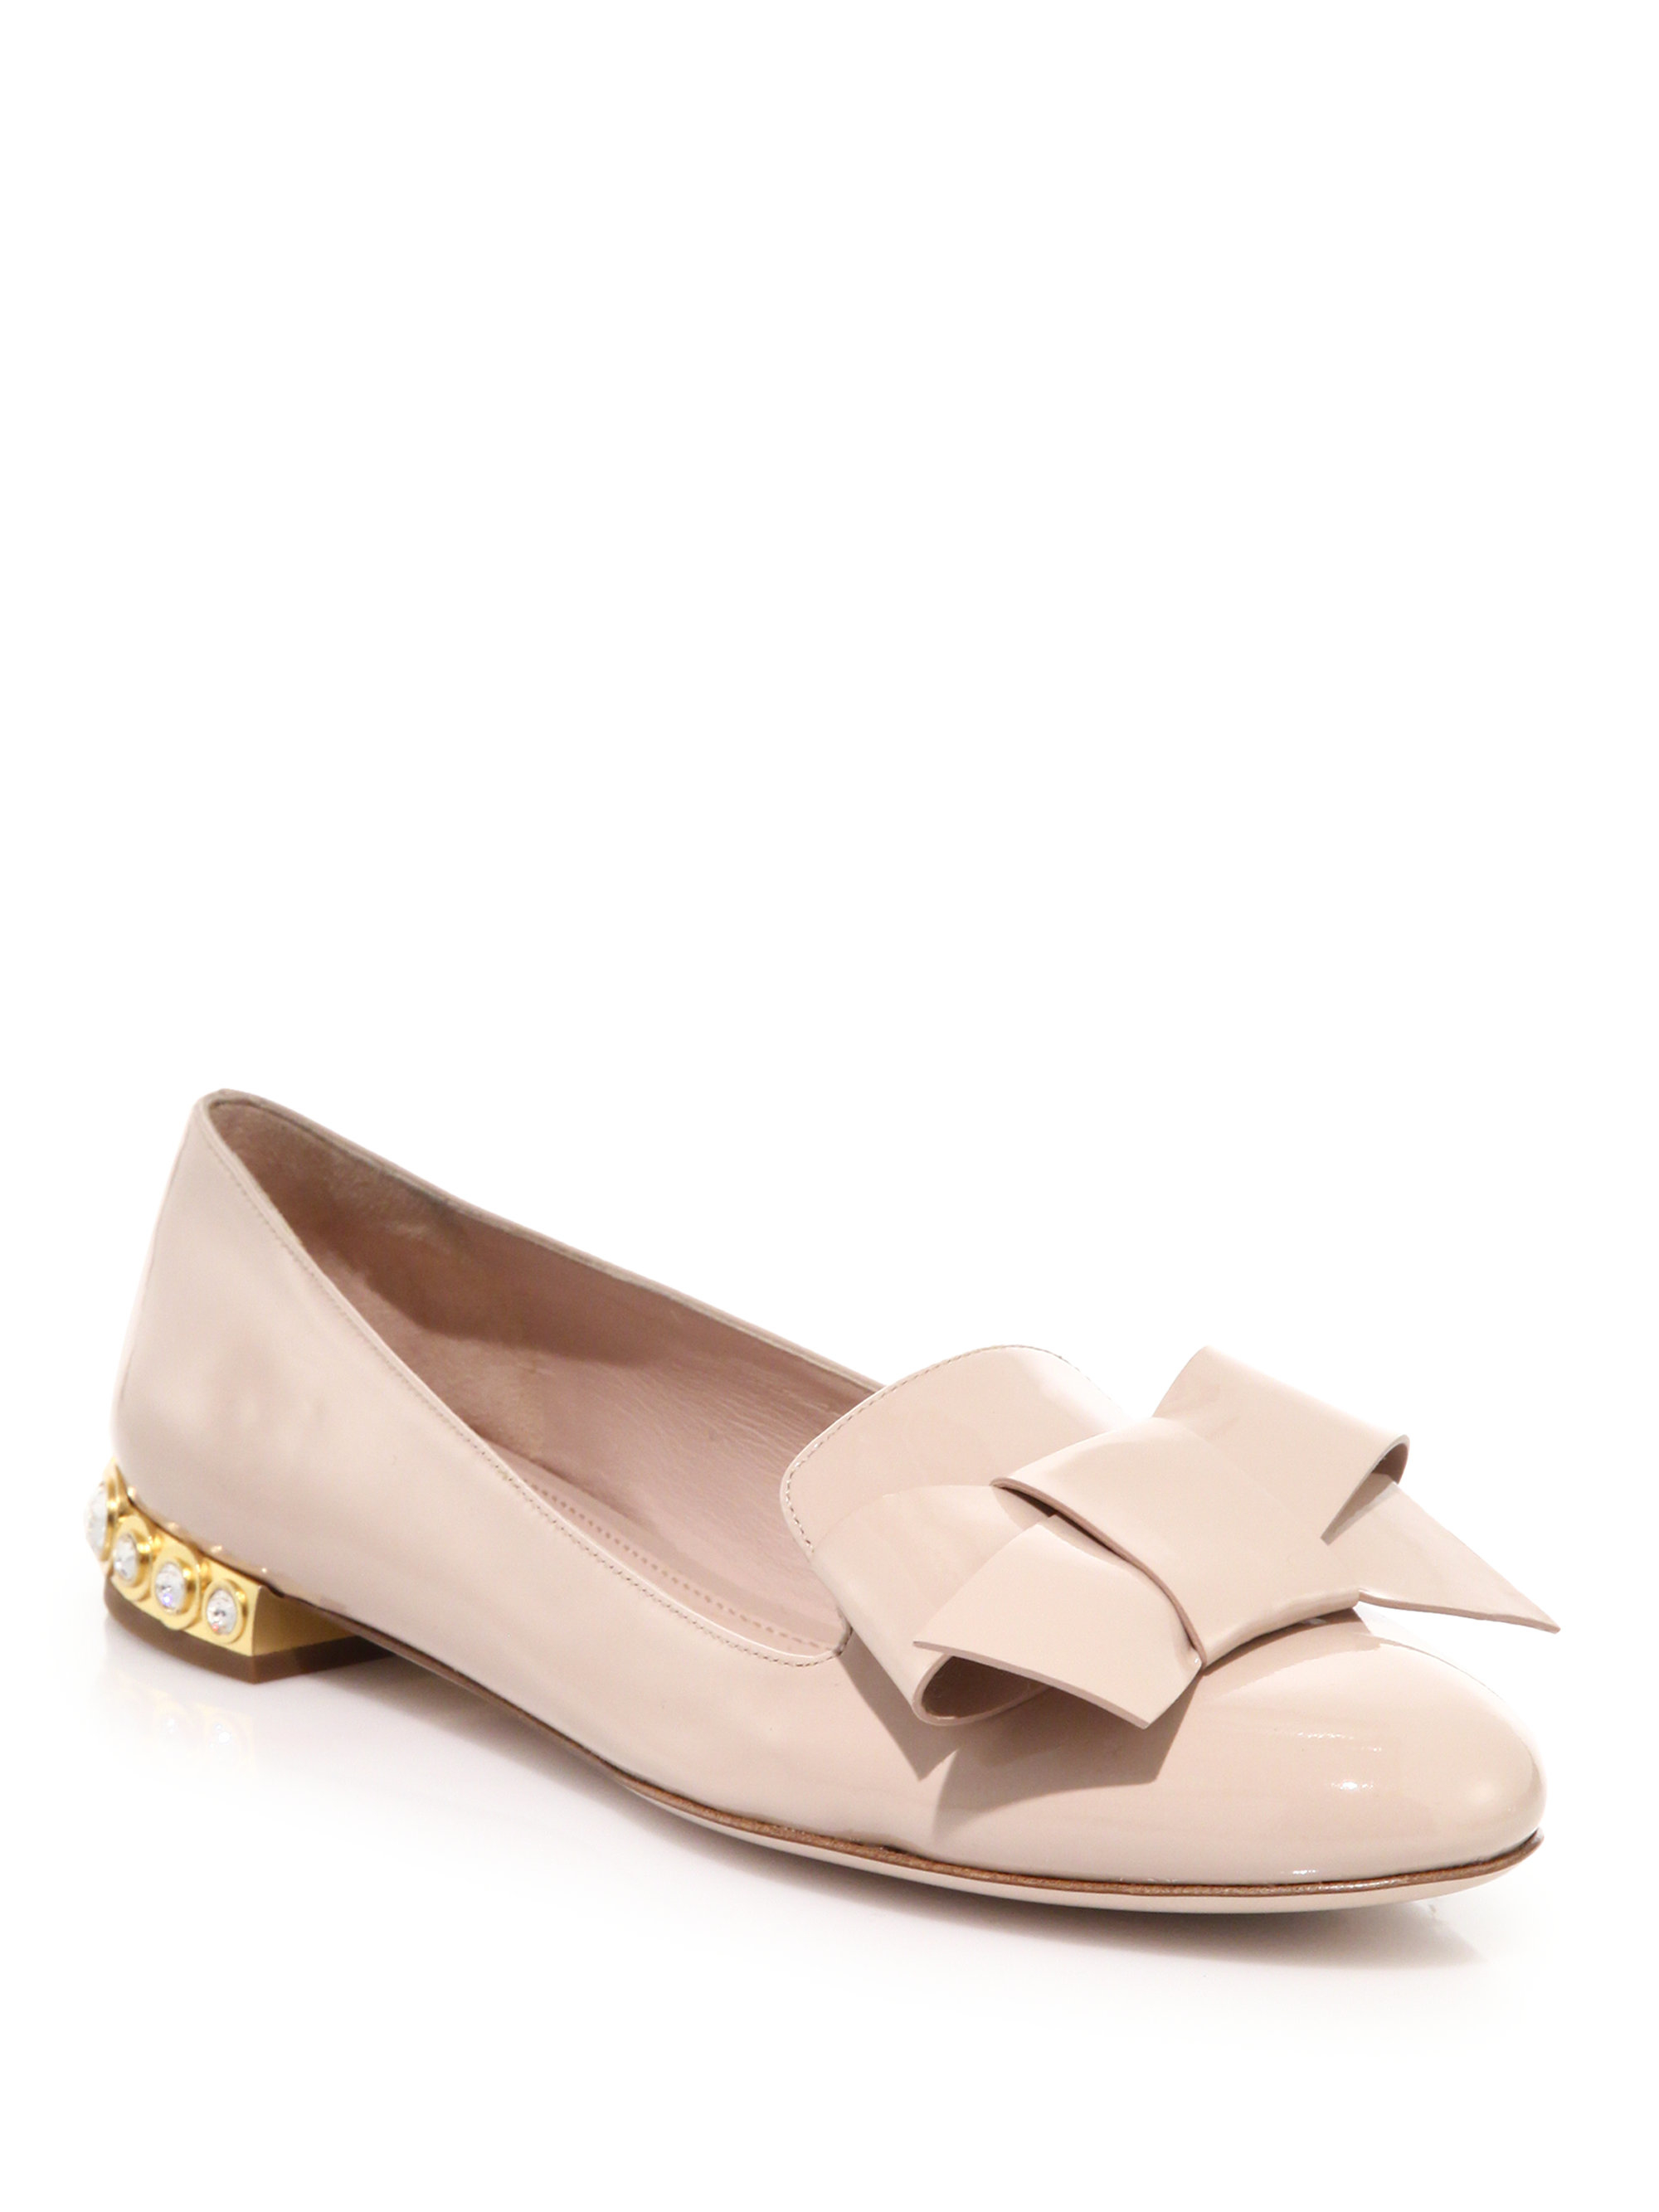 Miu Miu Leather Jeweled Flats outlet huge surprise clearance marketable outlet fashionable v3tXUILd1T